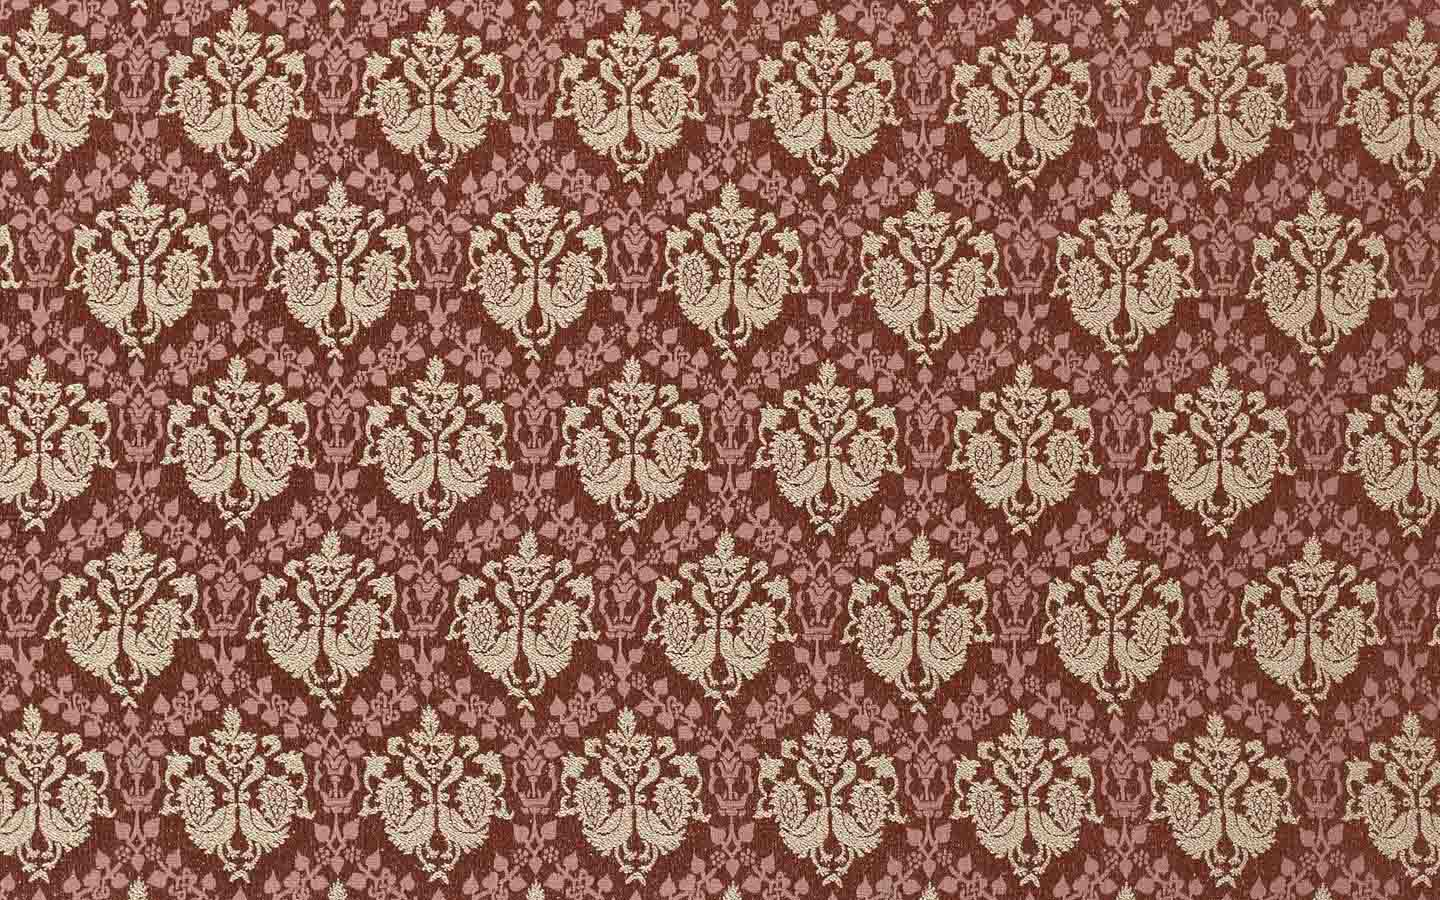 Free Wallpaper Patterns Page 1